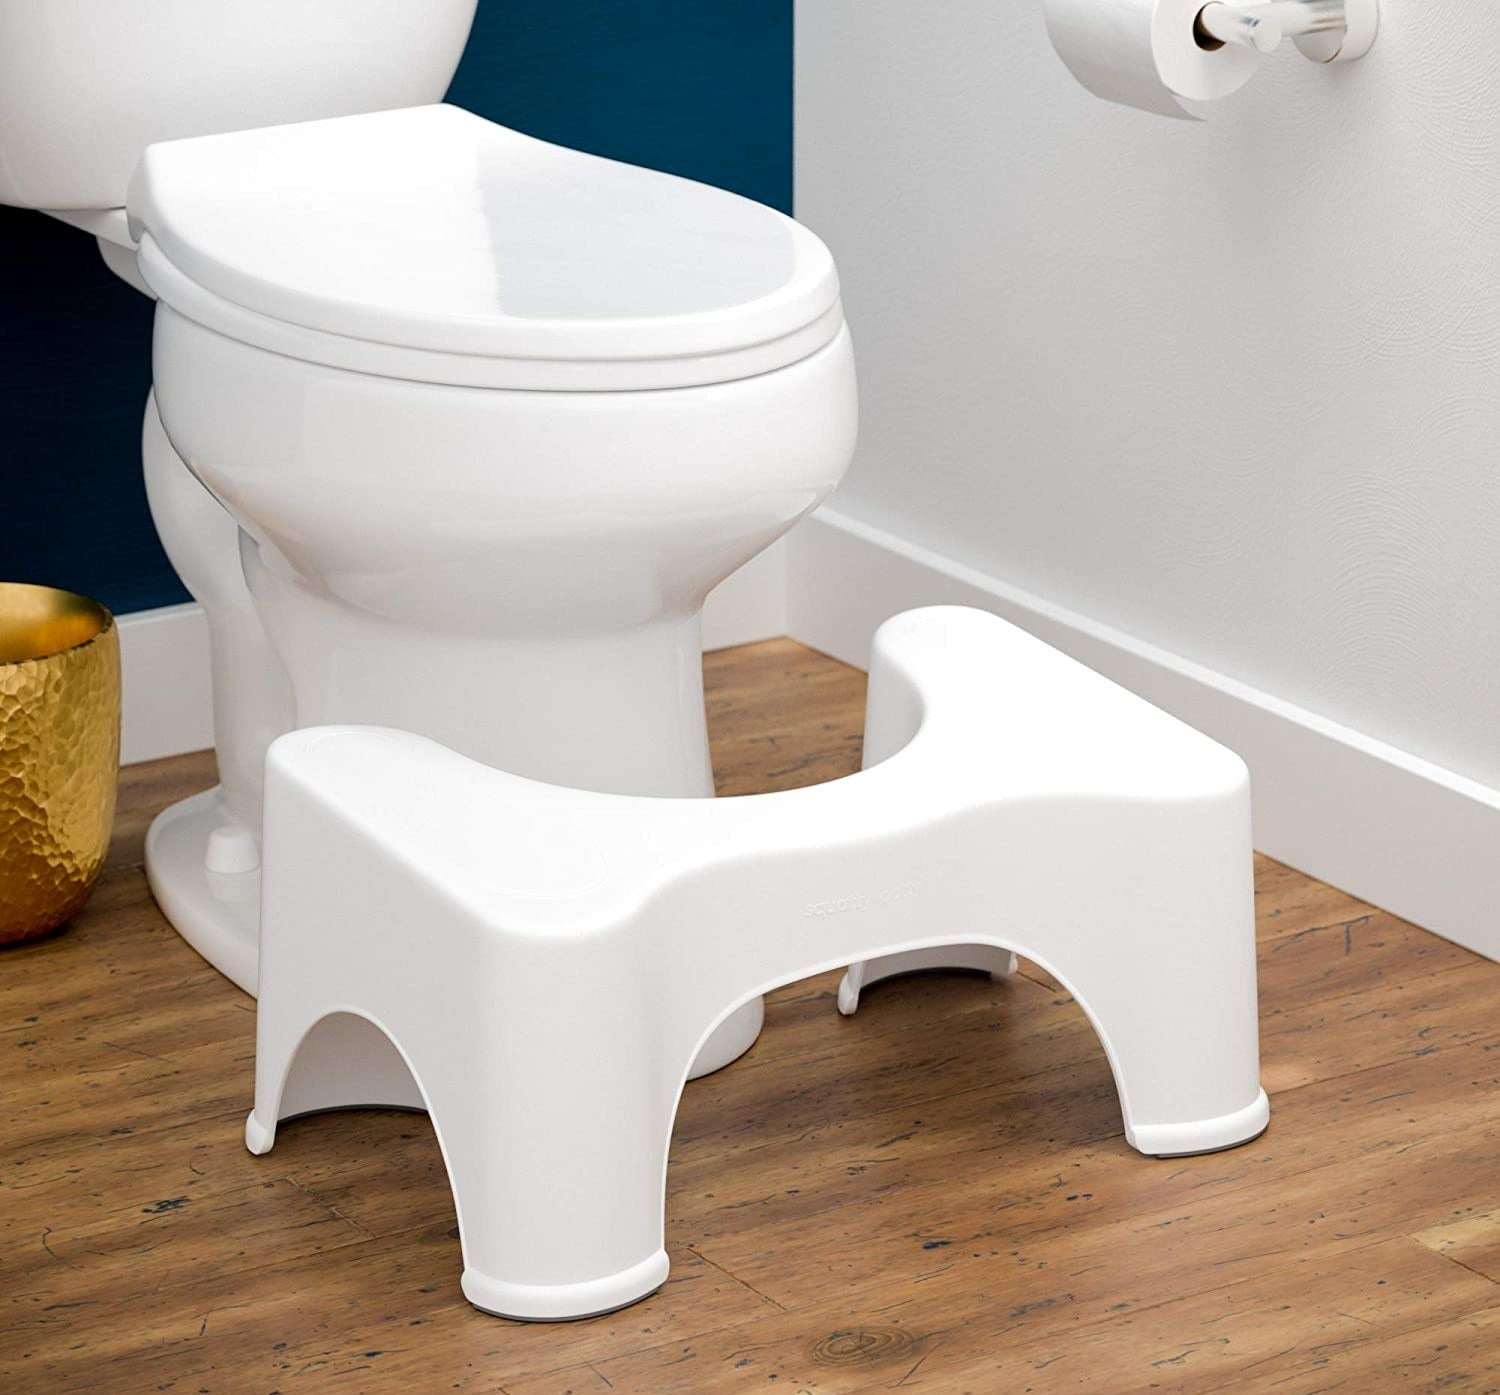 the squatty potty at the foot of a toilet